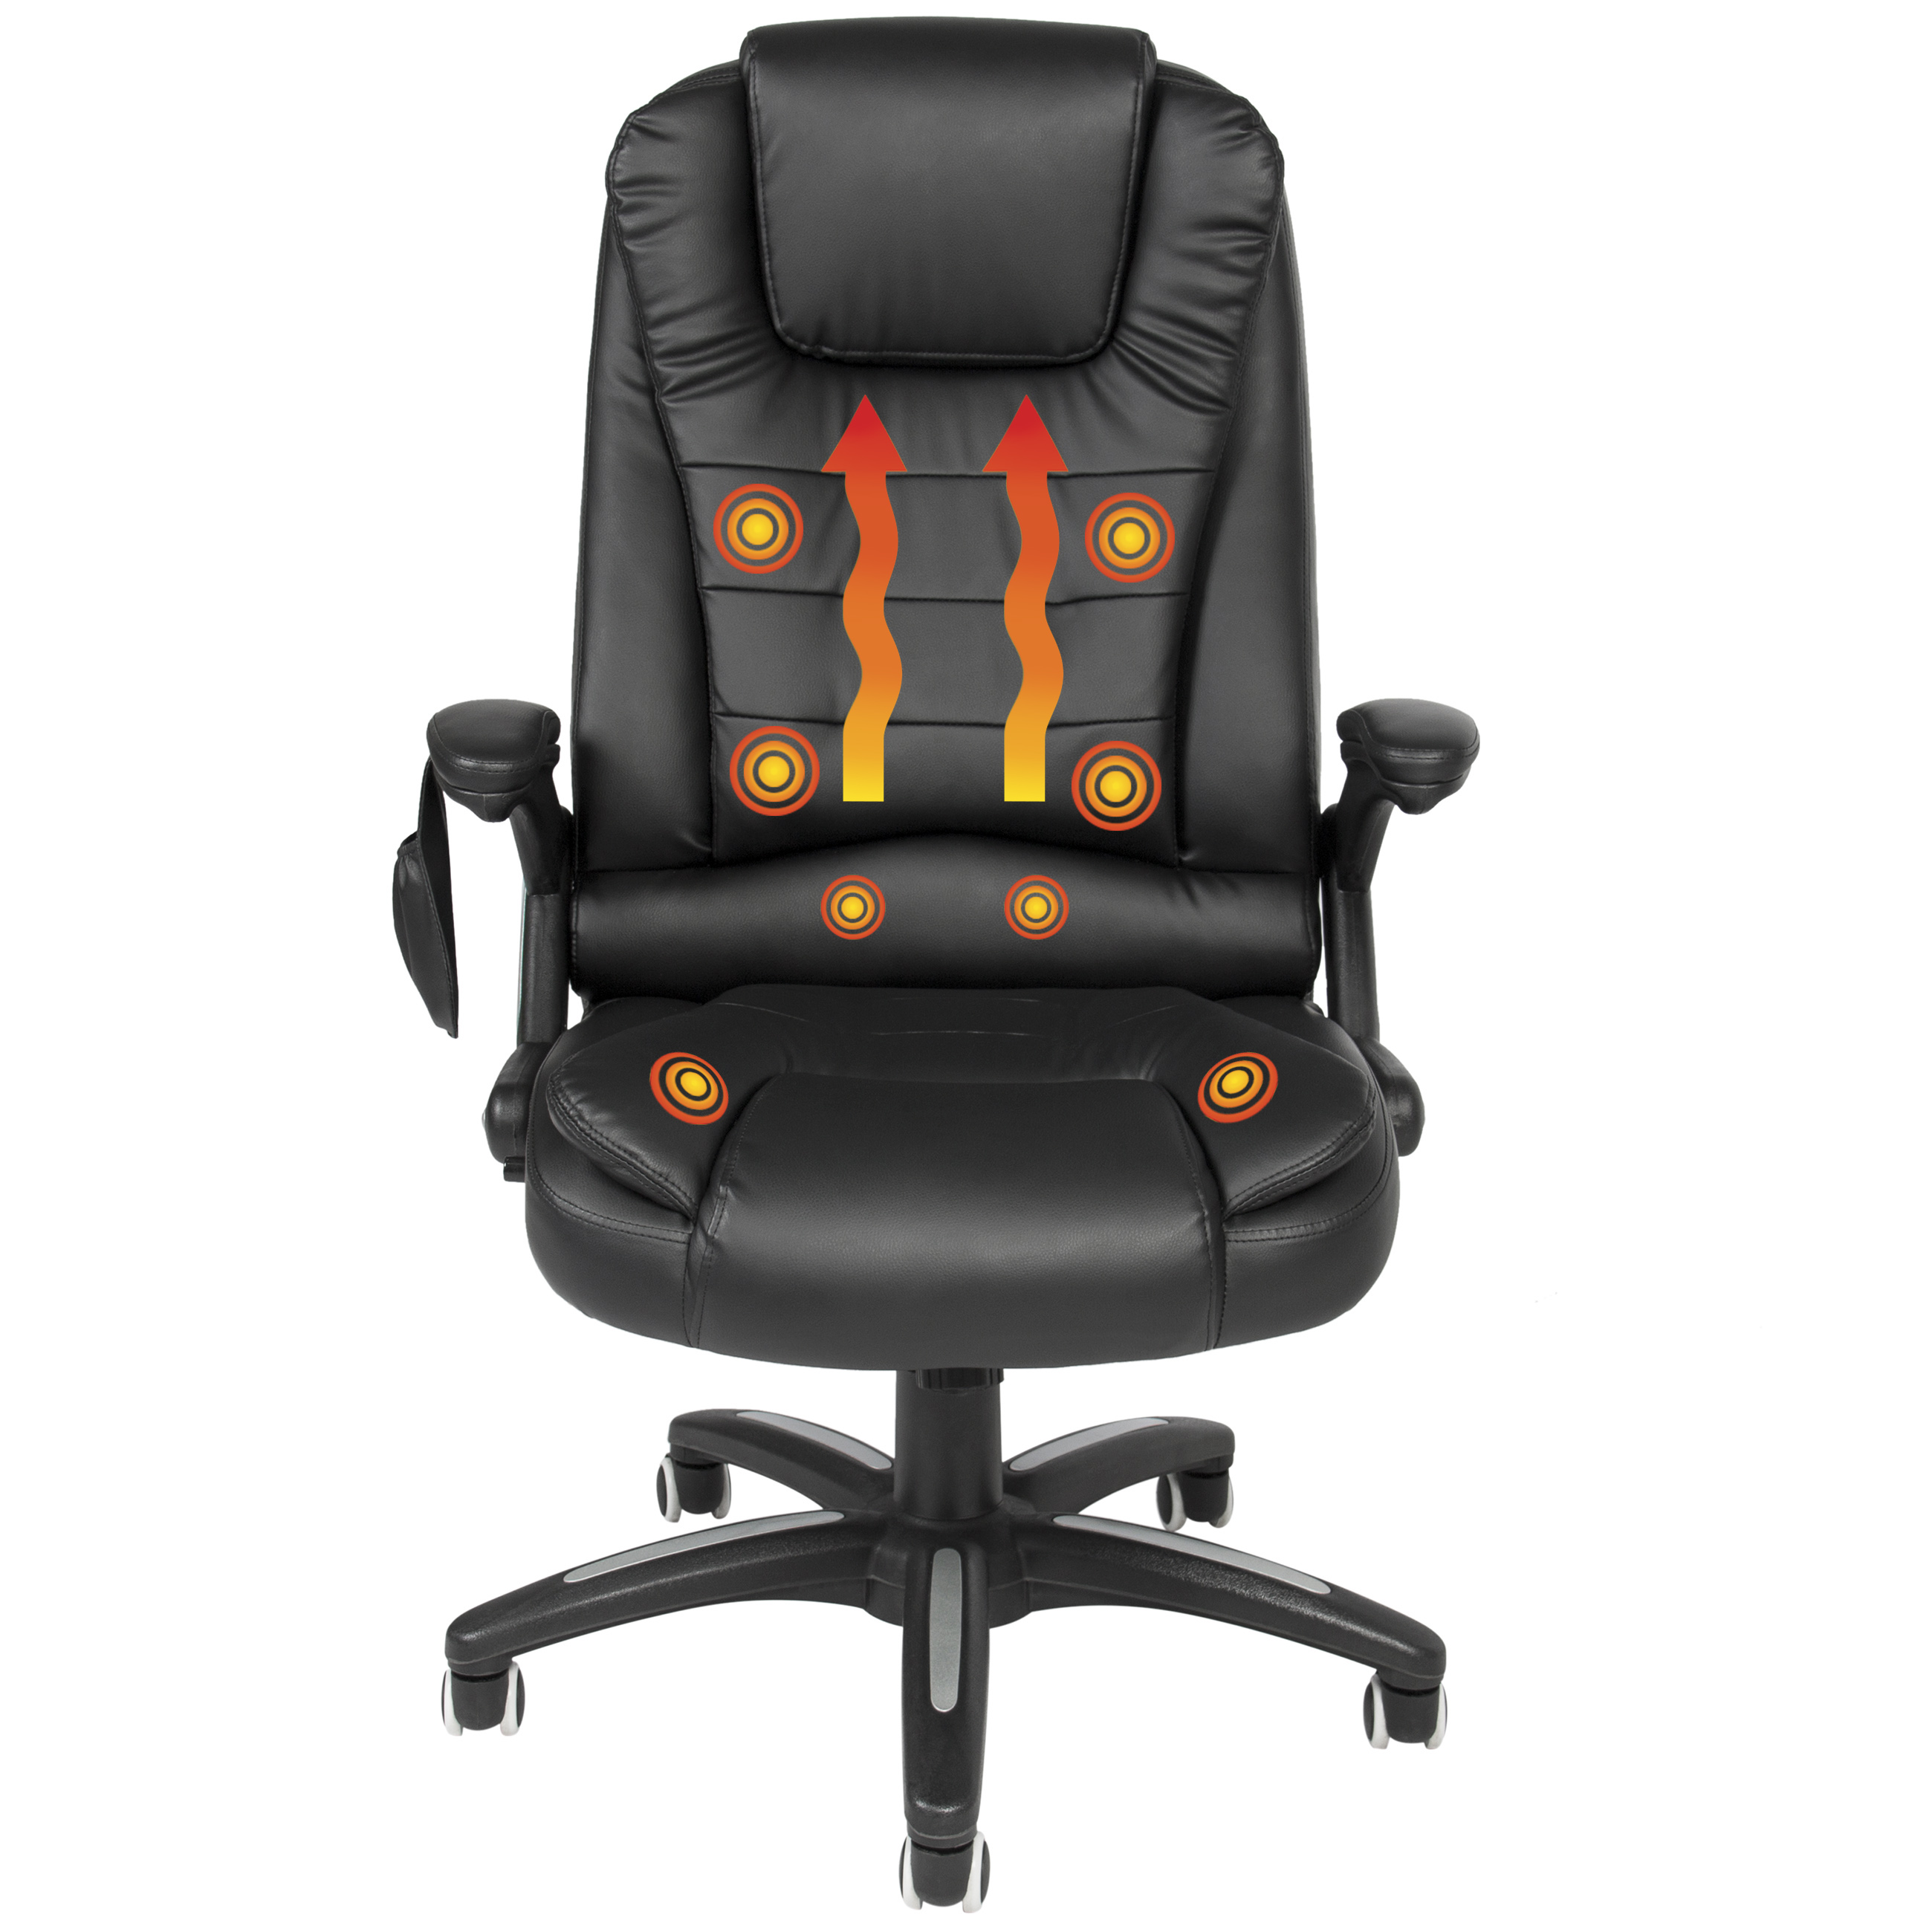 Executive Ergonomic Heated Vibrating Computer Office Massage Chair Black